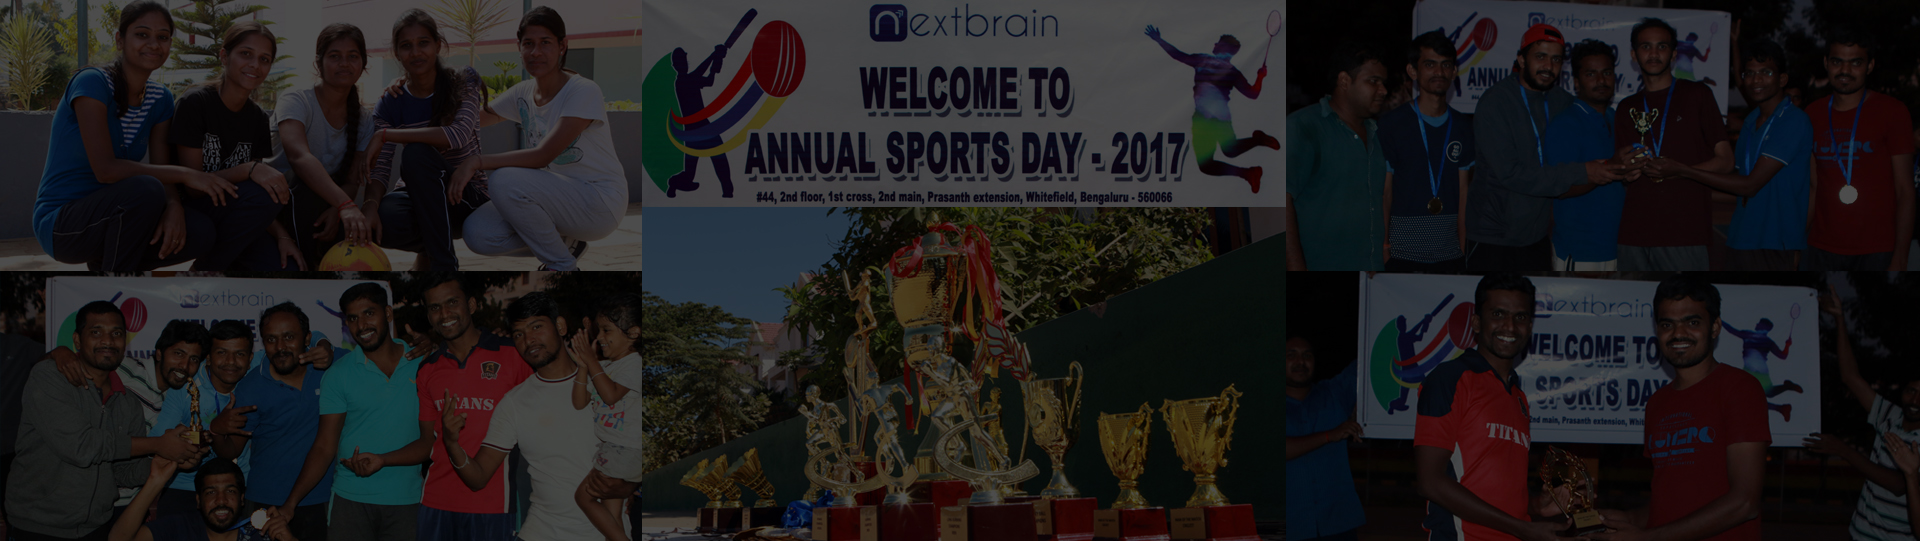 Annual sports day celebration in Nextbrain Technologies